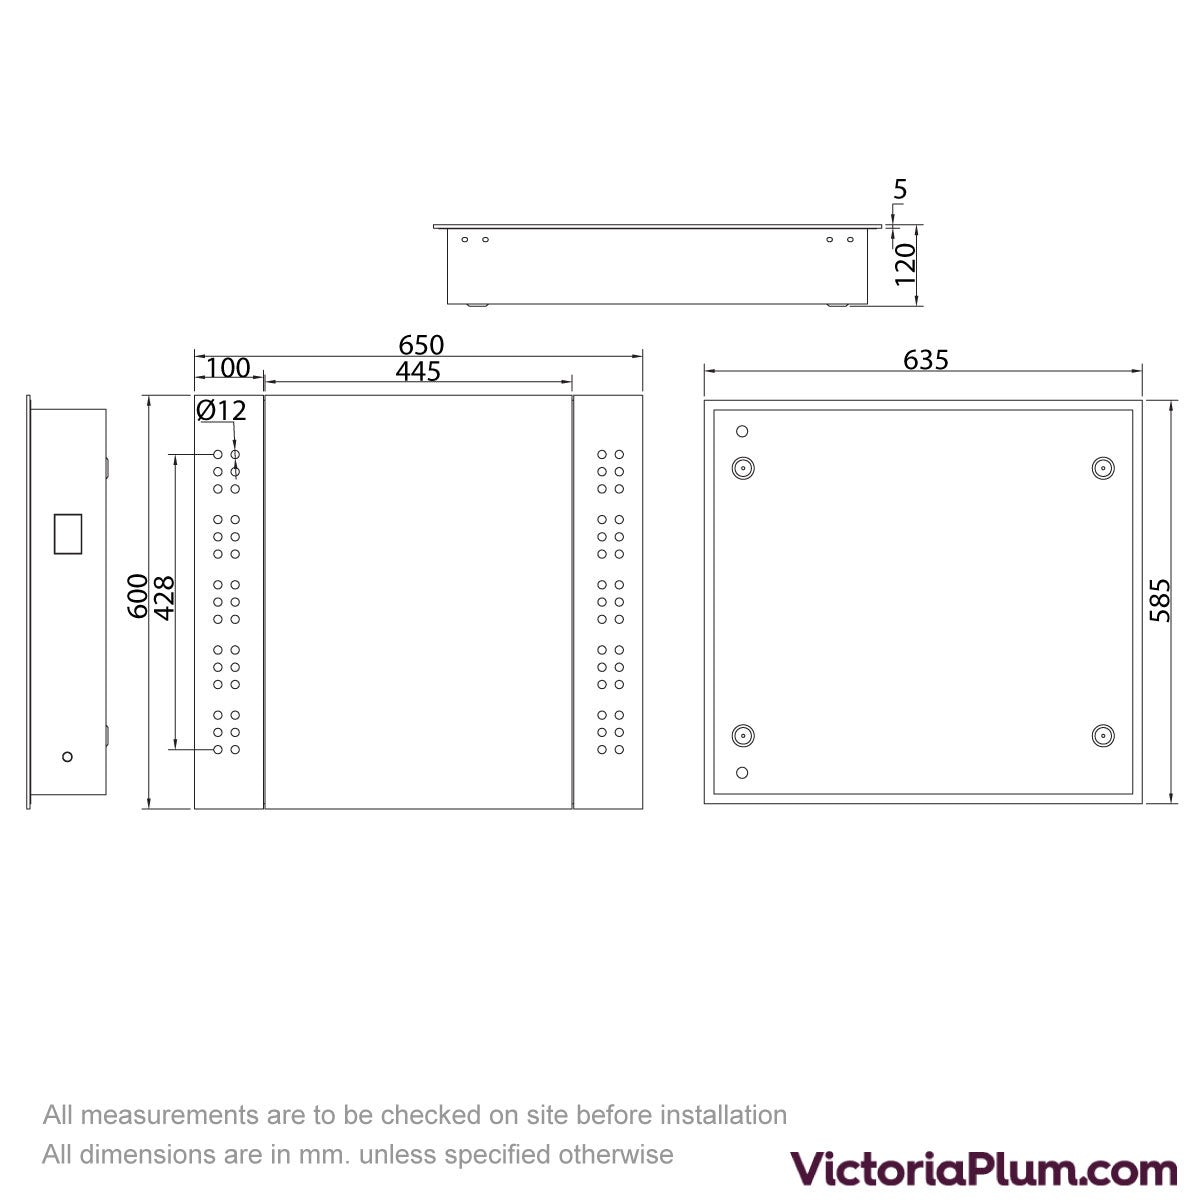 Dimensions for Mode Fuller LED Mirror cabinet 650x600